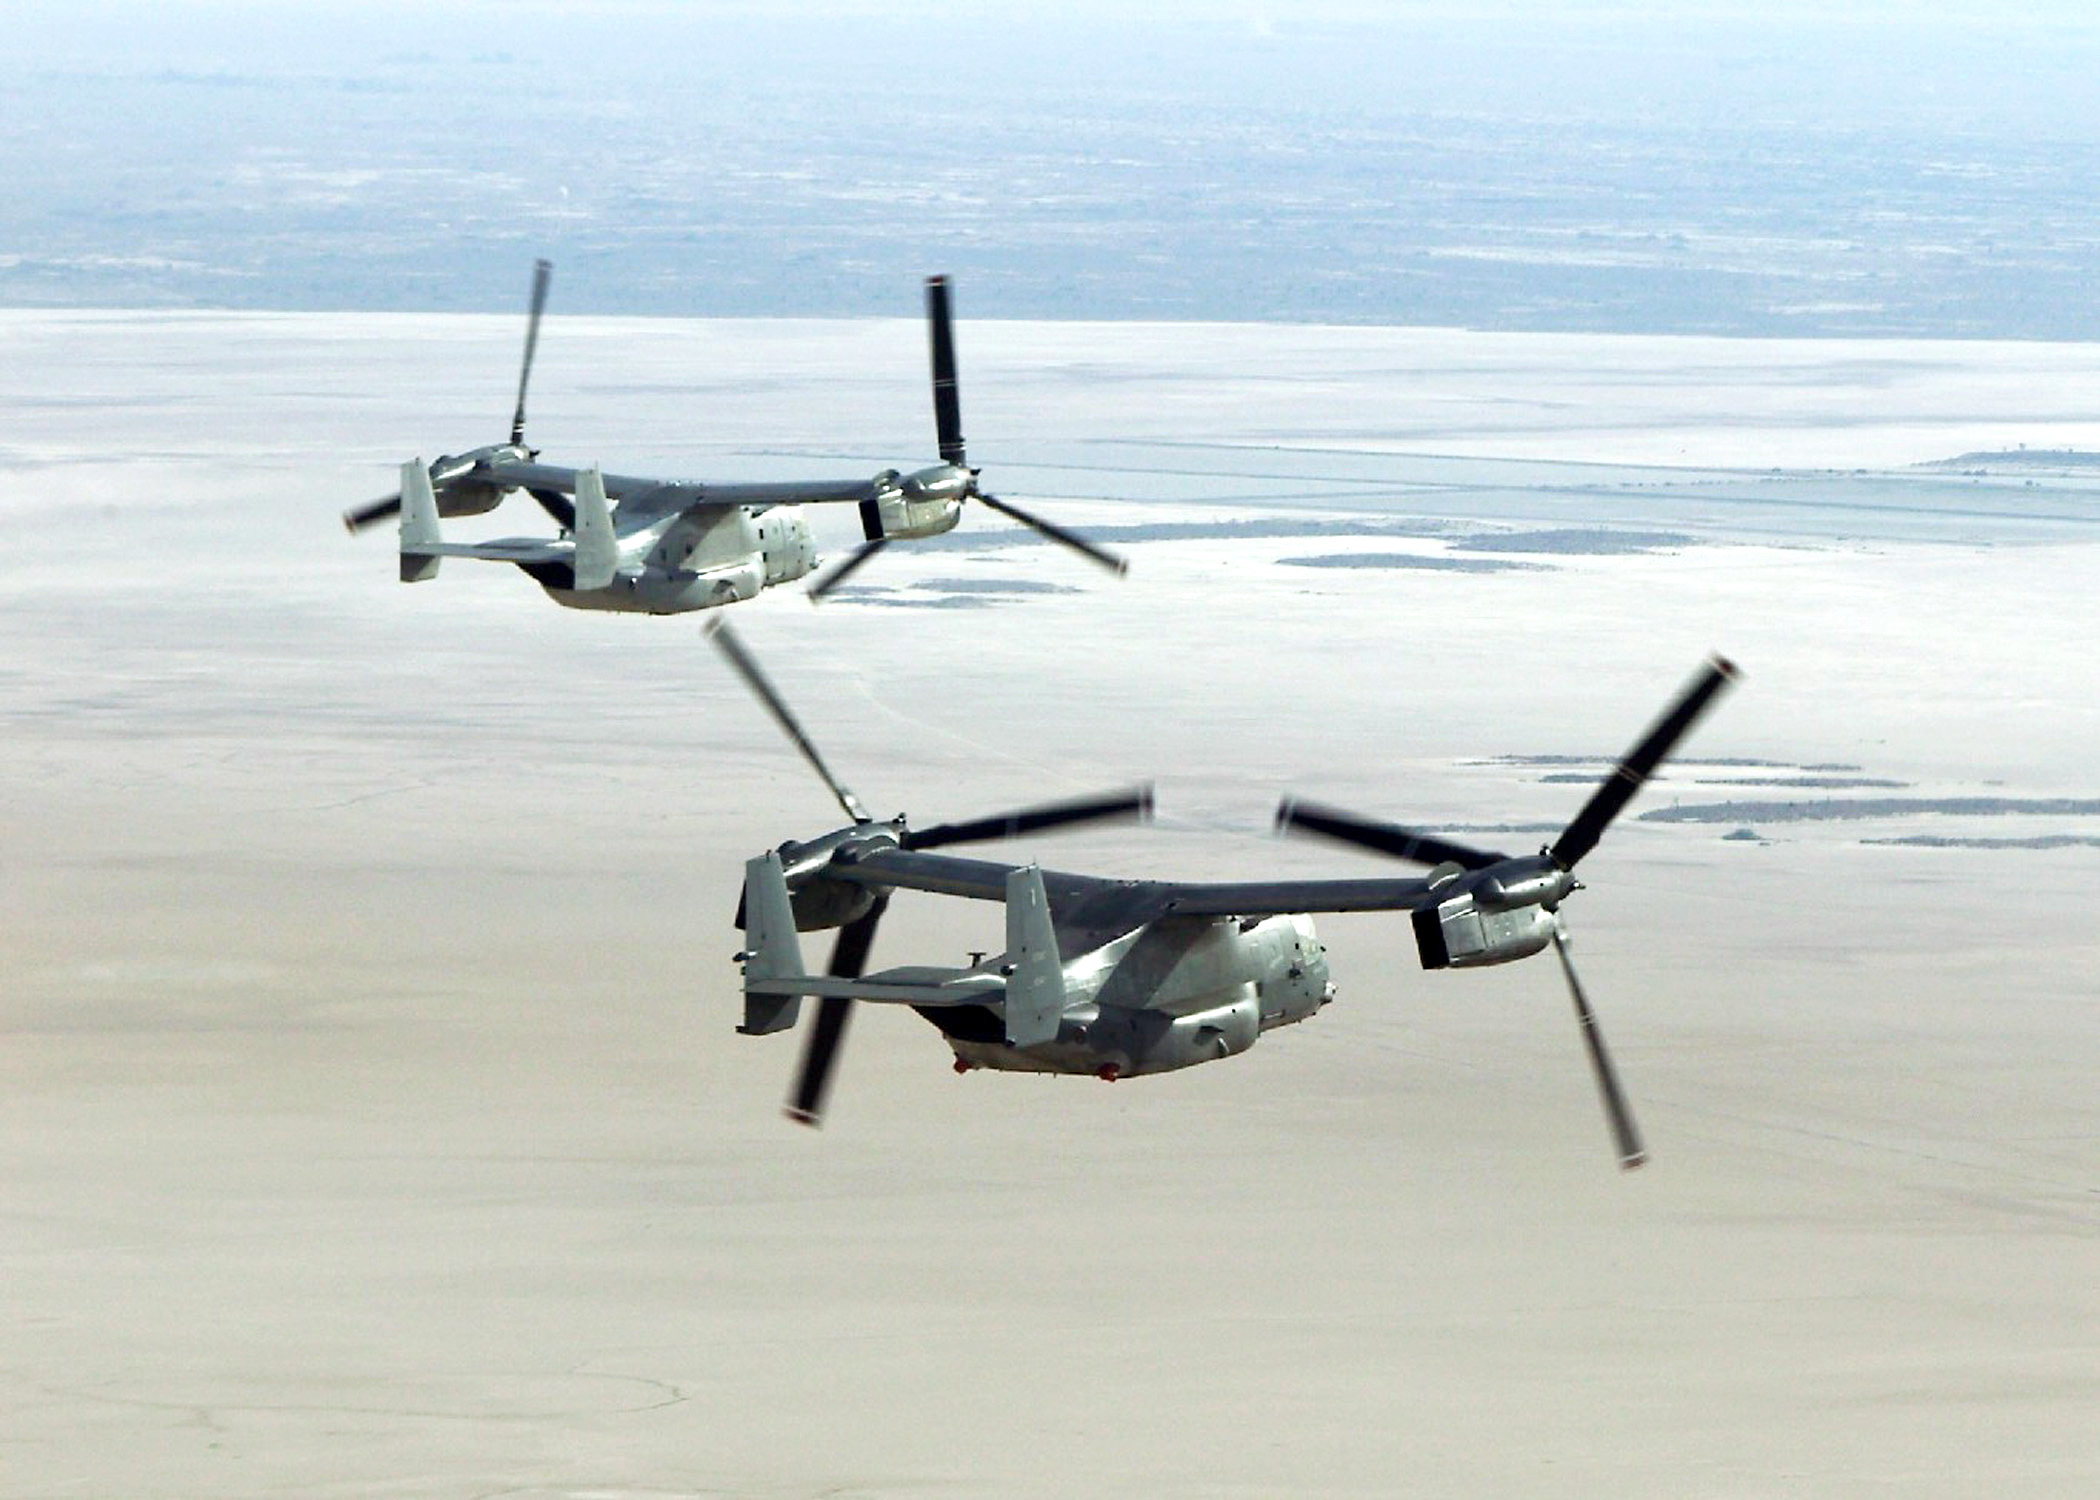 CV-22 Osprey - Two CV-22 Ospreys flying side by side.